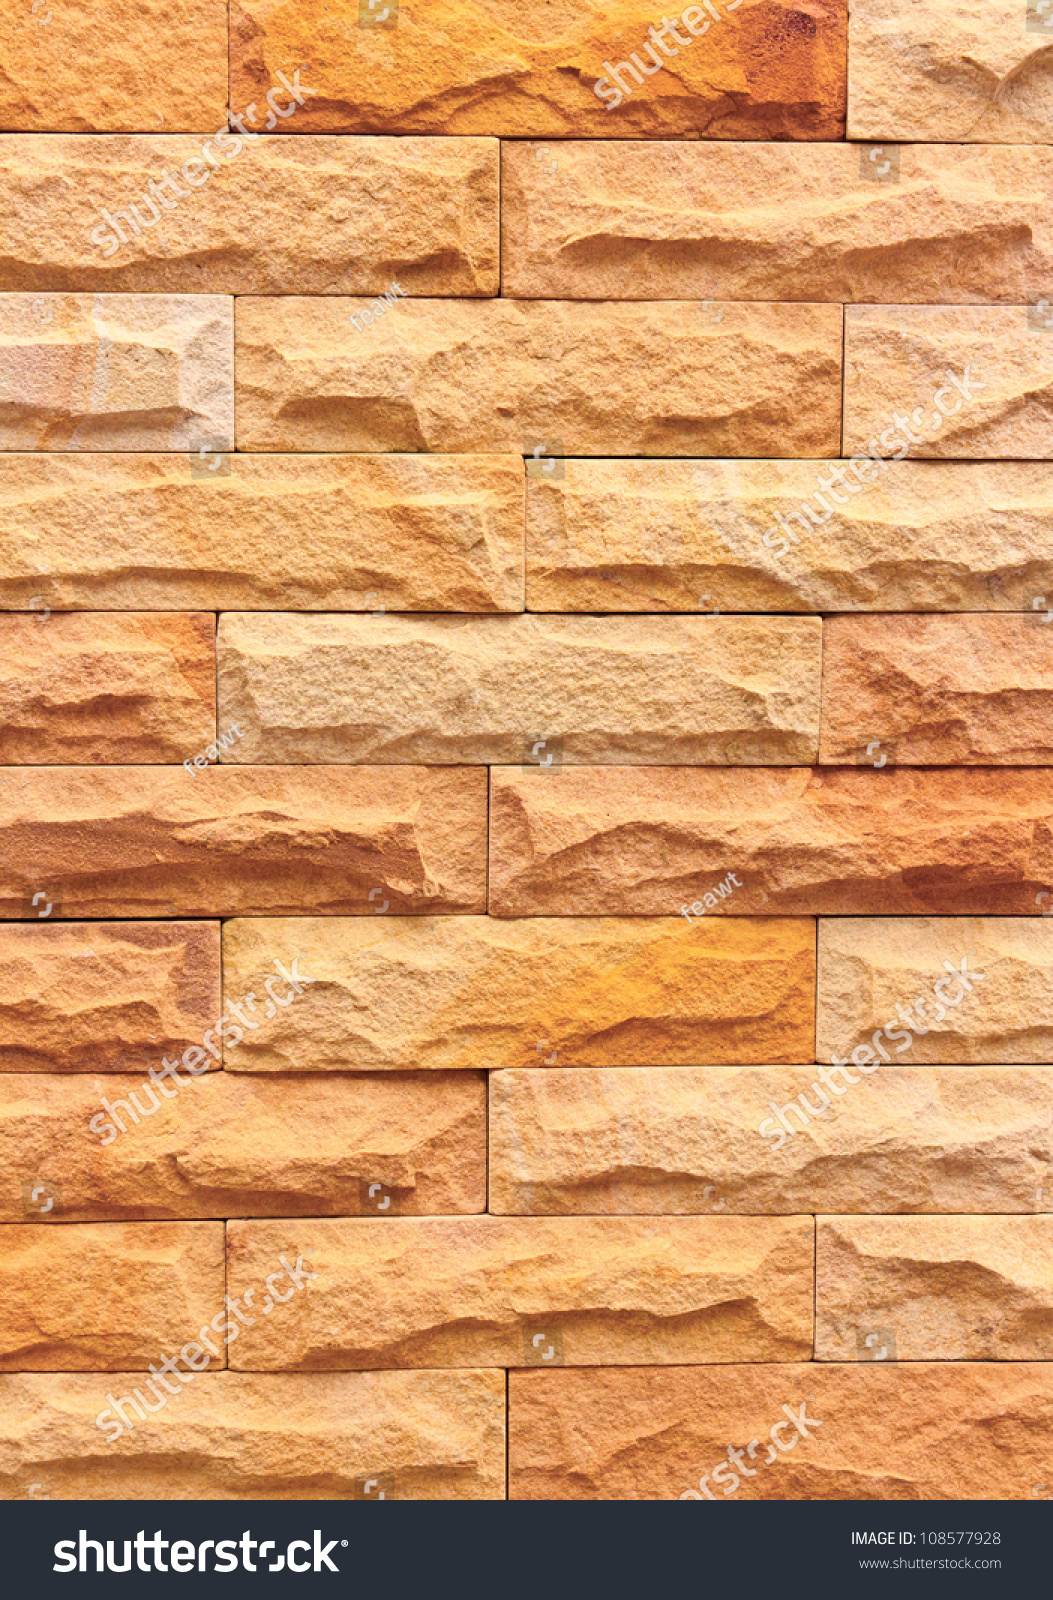 Background texture of brick stone exterior and interior decoration building  material for wall finishing Background Texture Brick Stone Exterior Interior Stock Photo  . Exterior Wall Finishing Materials. Home Design Ideas